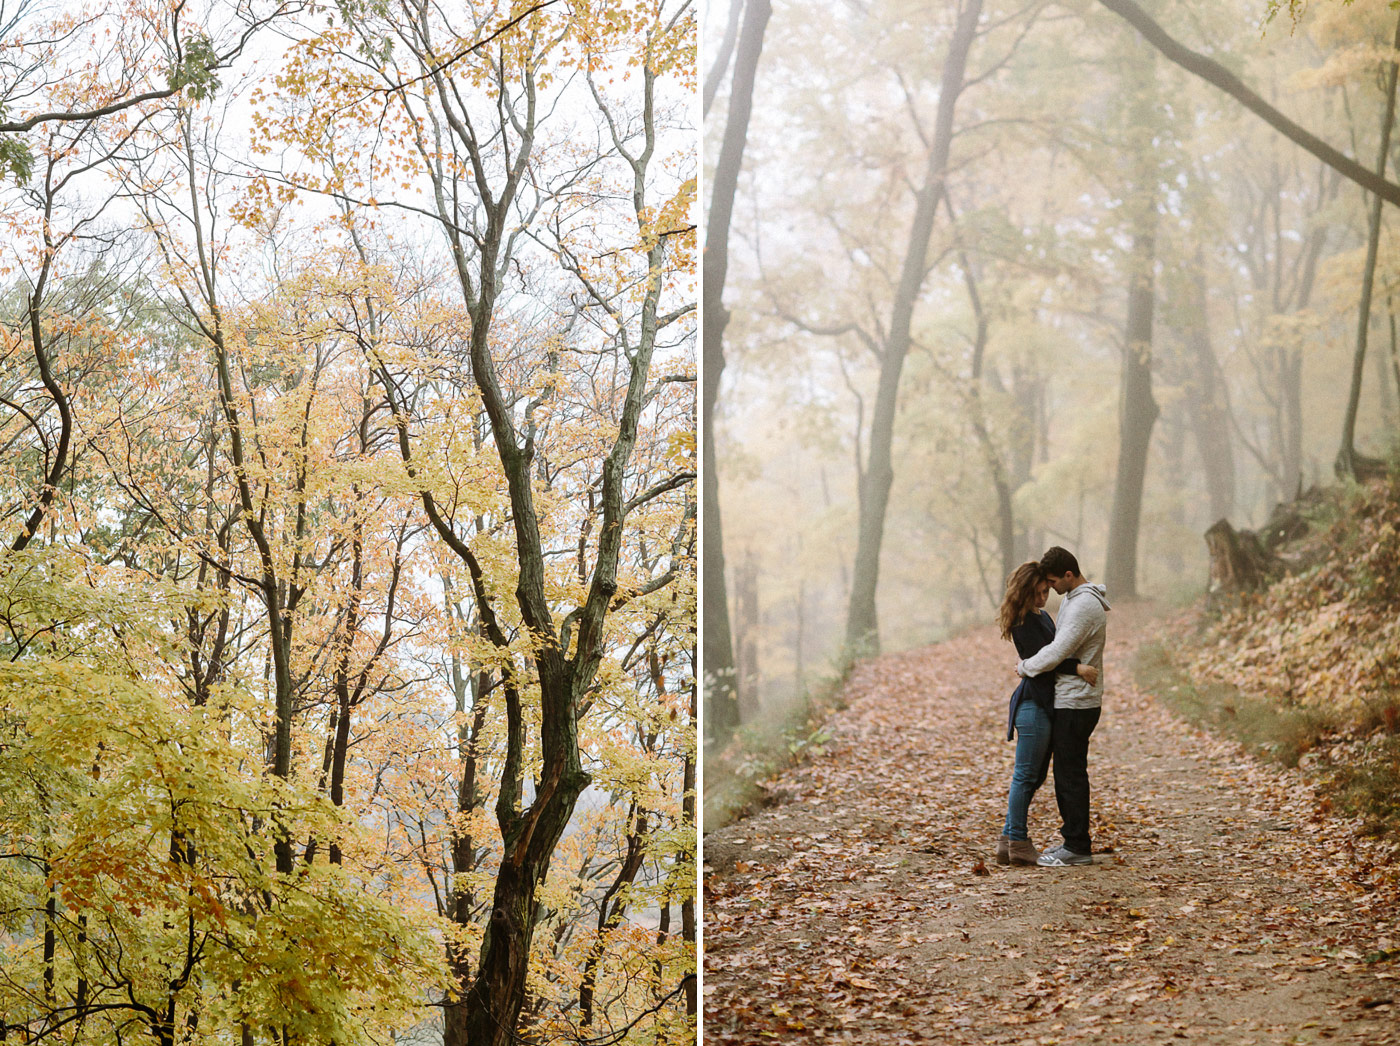 Foggy forest trees leaves with couple on path